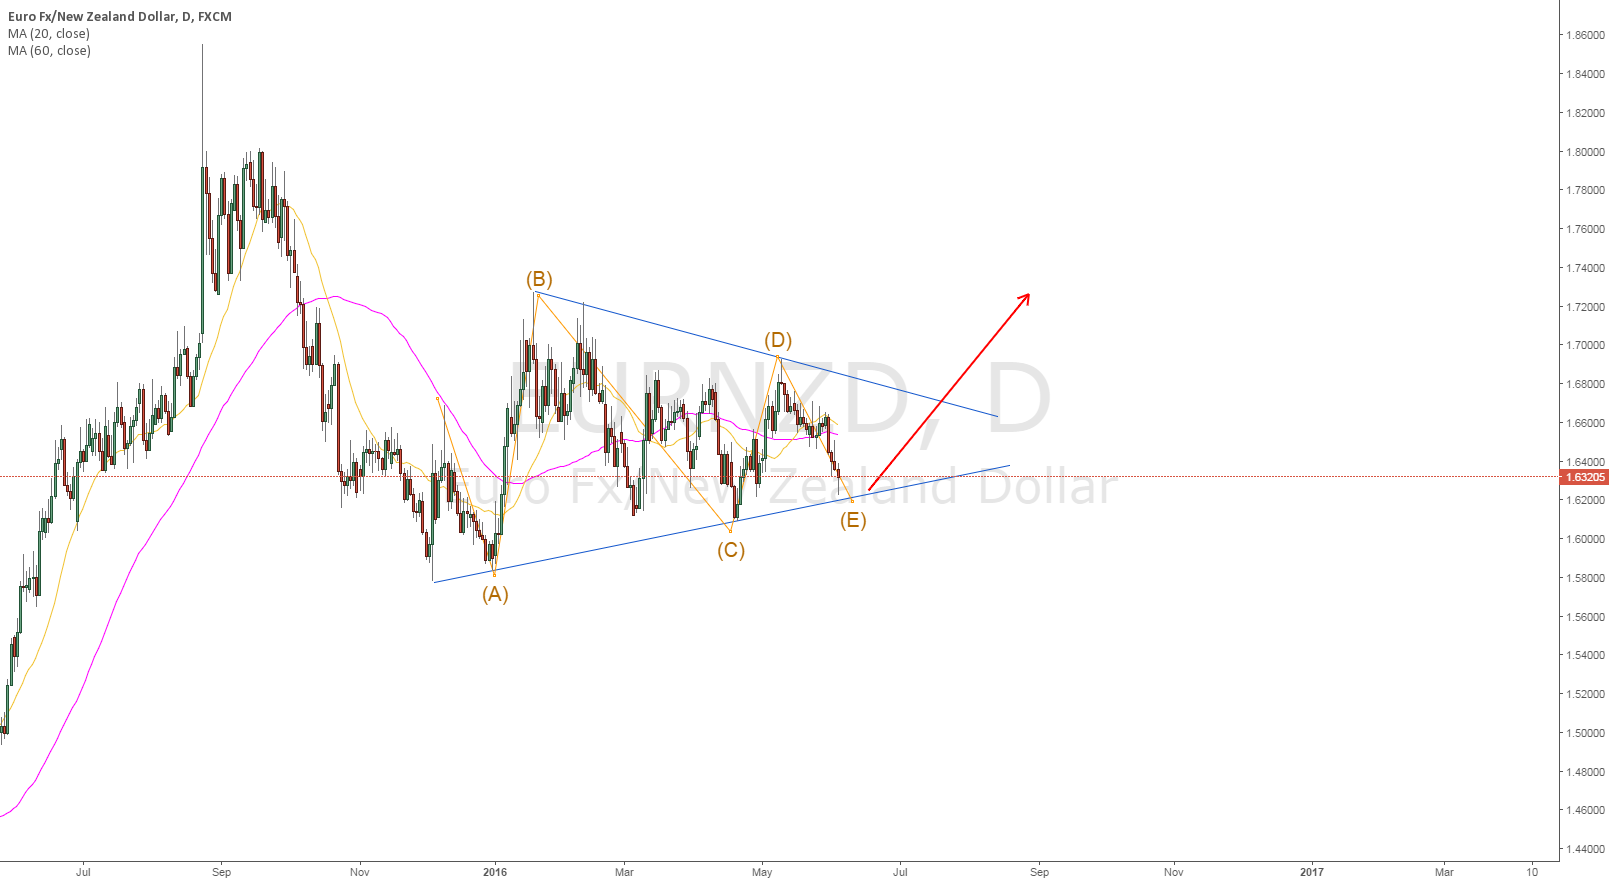 if you like gamble, nzd is a good choice to short